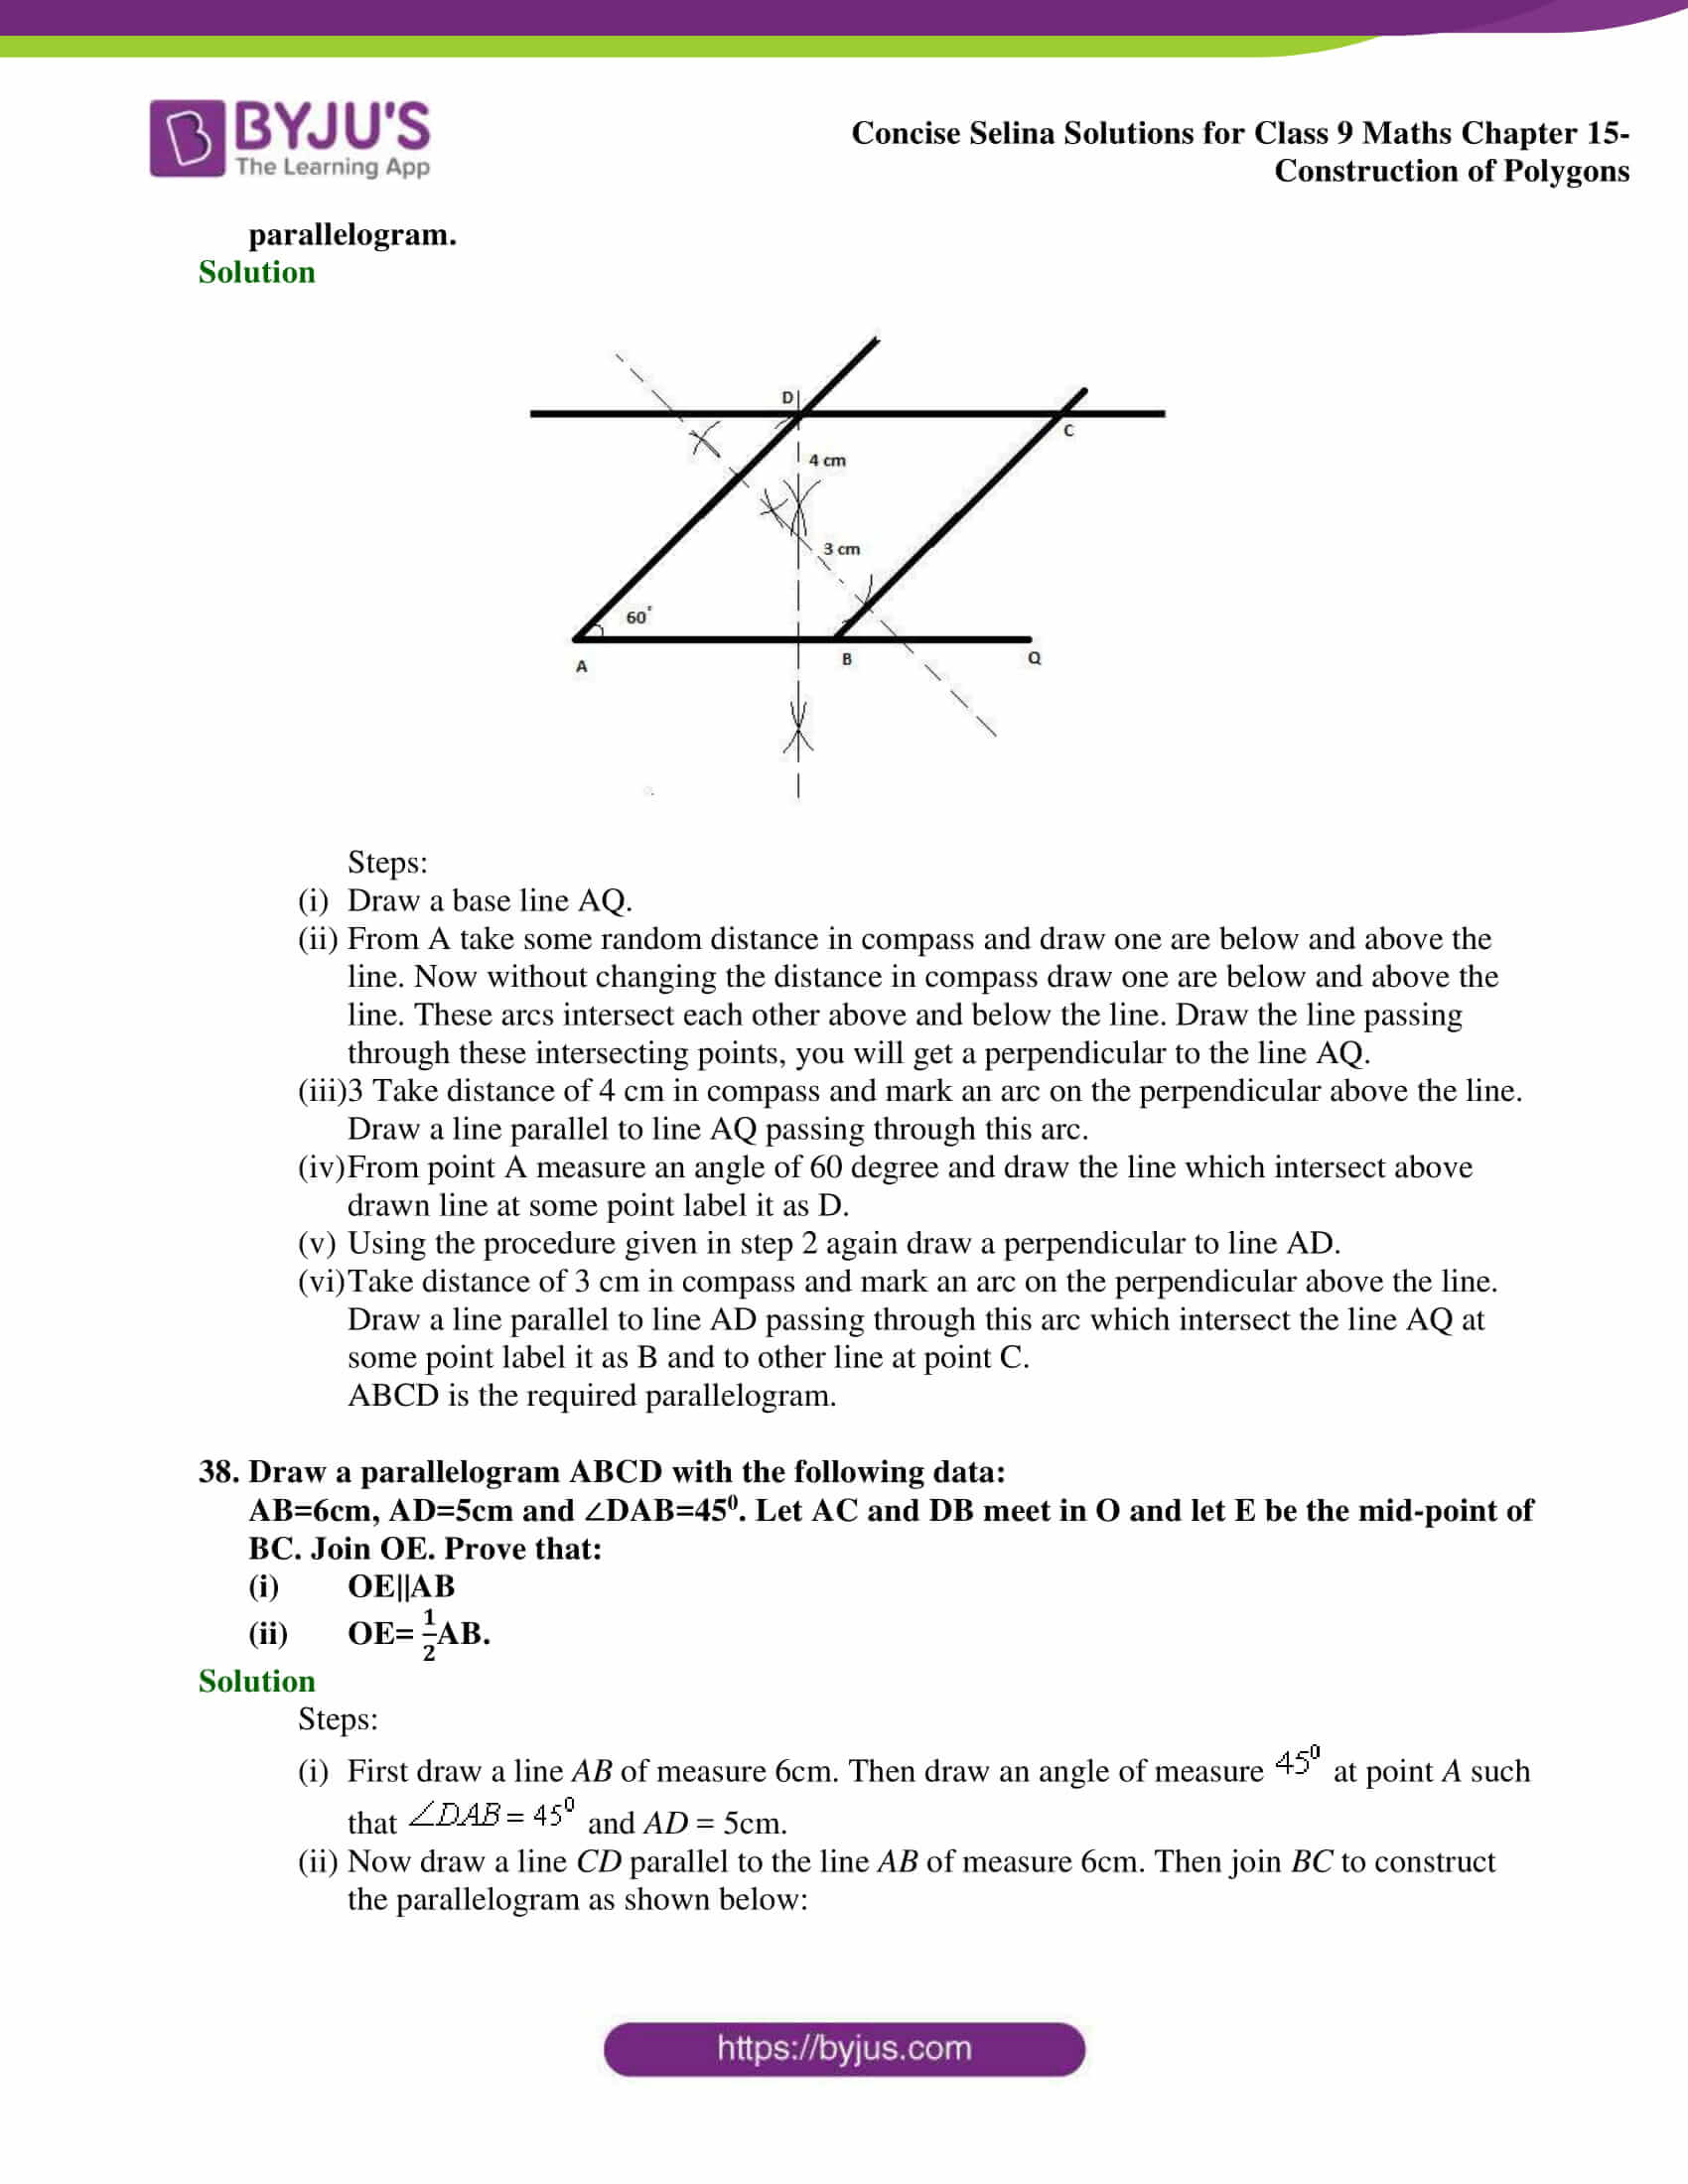 selina Solutions for Class 9 Maths Chapter 15 part 20